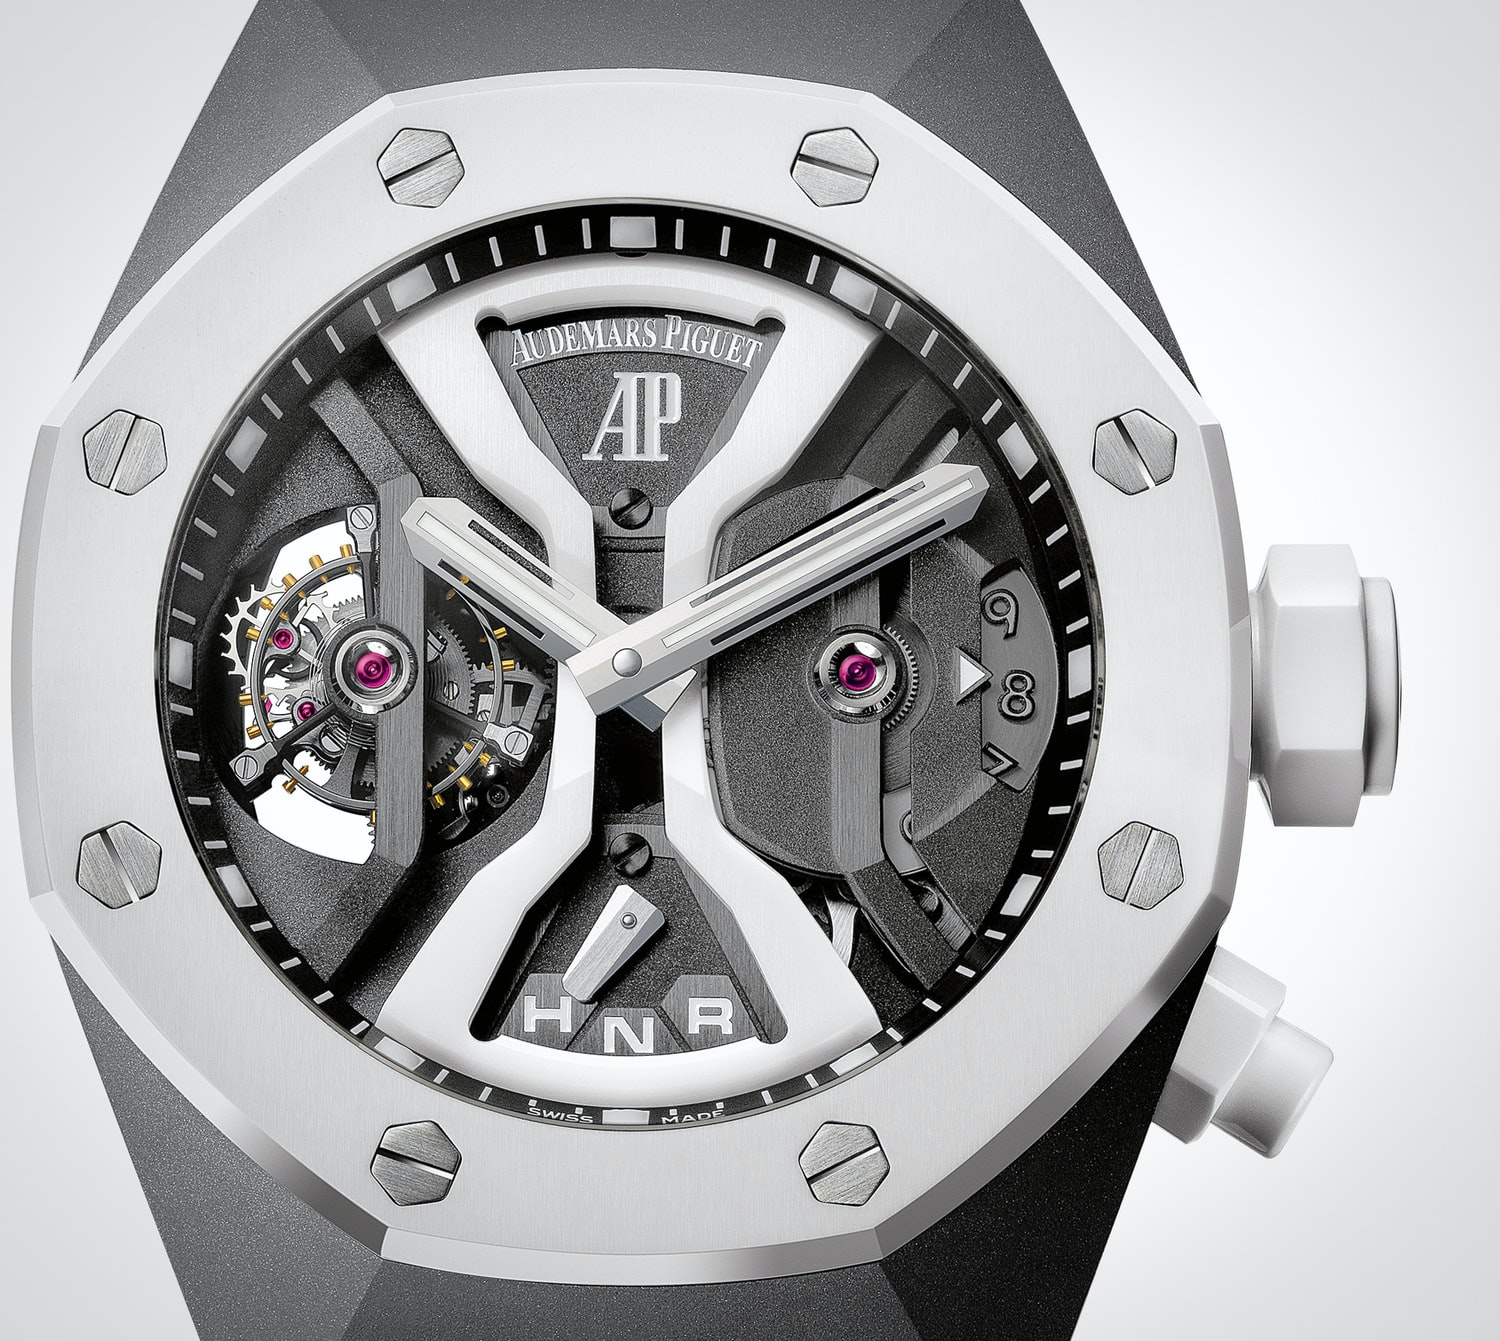 Pre-SIHH 2014: Introducing The Audemars Piguet Royal Oak ...